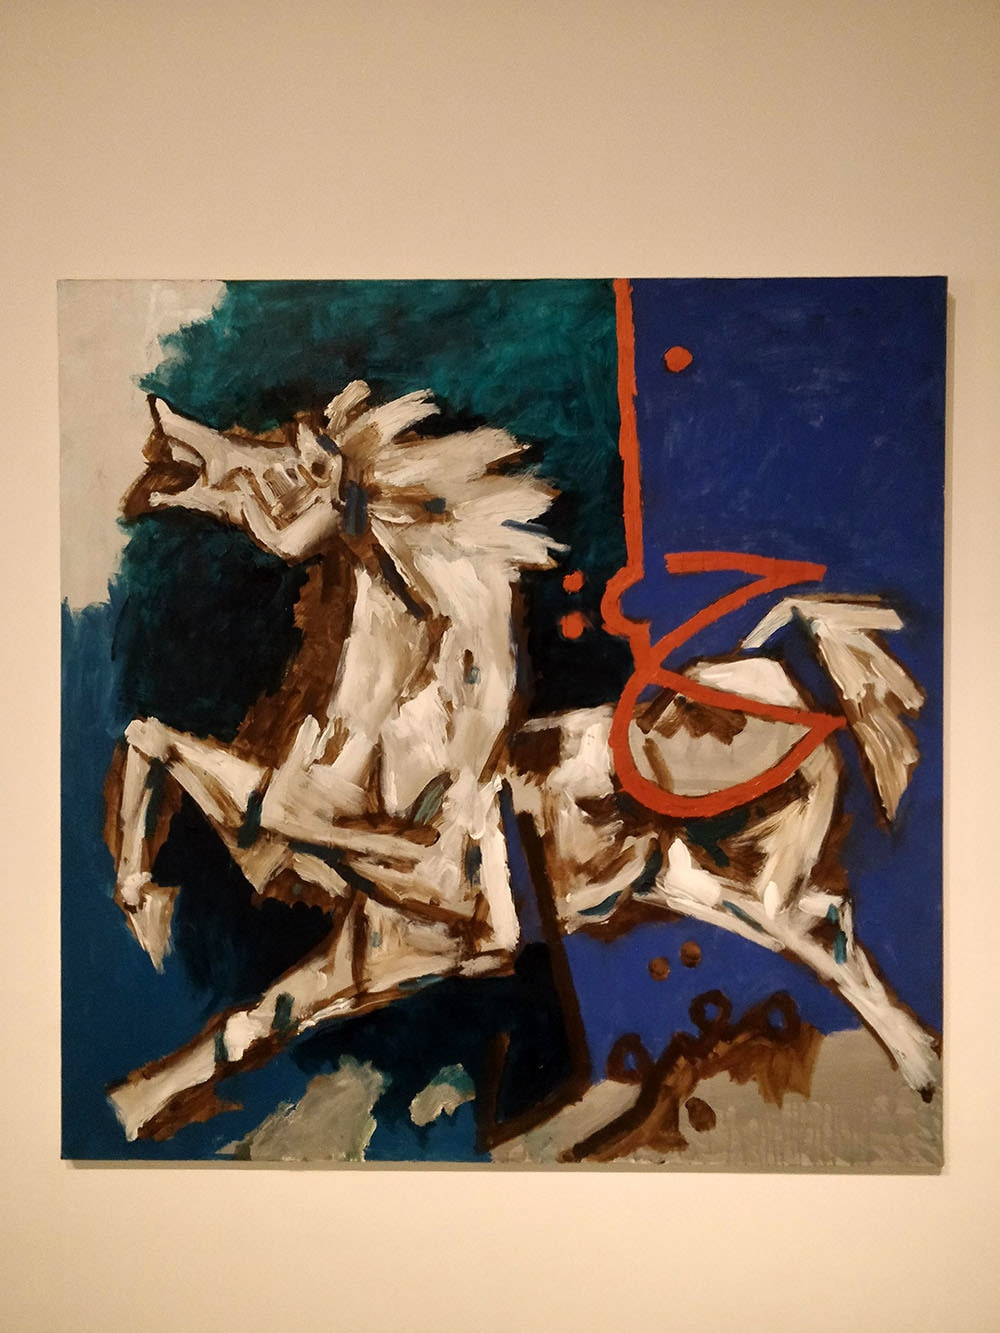 """Husain on a Horse"", 2010. Oil on canvas. Collection of Sheikh Hasan MA Al Thani, Doha.—Photo by author"